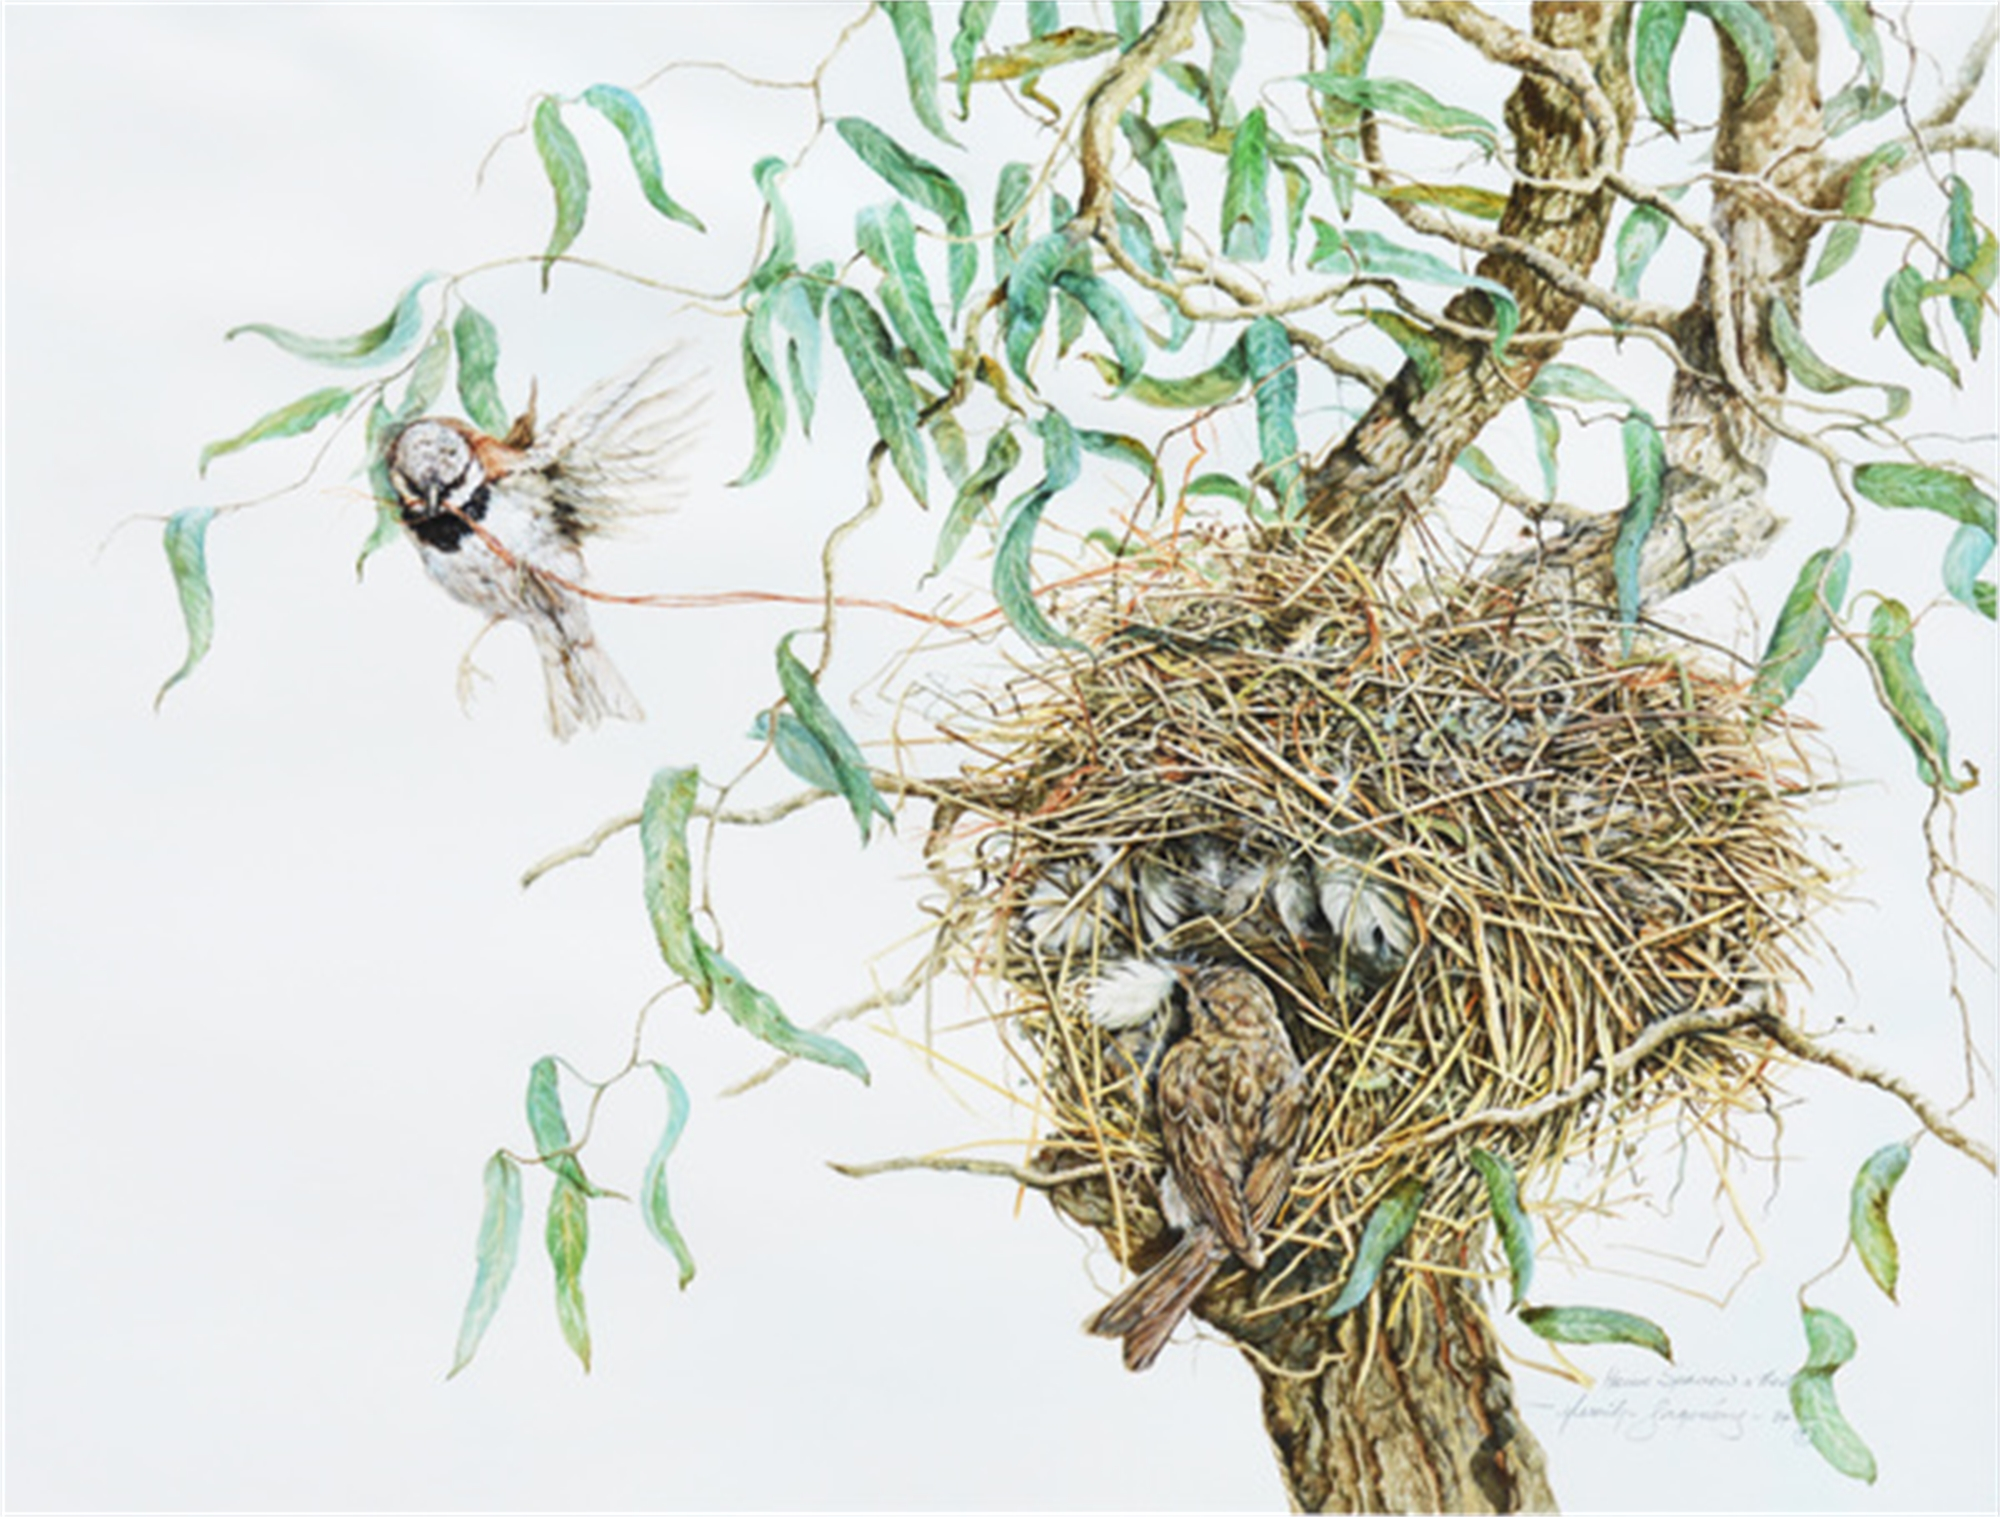 Sparrows and Nest by Merrilyn Jaquiery